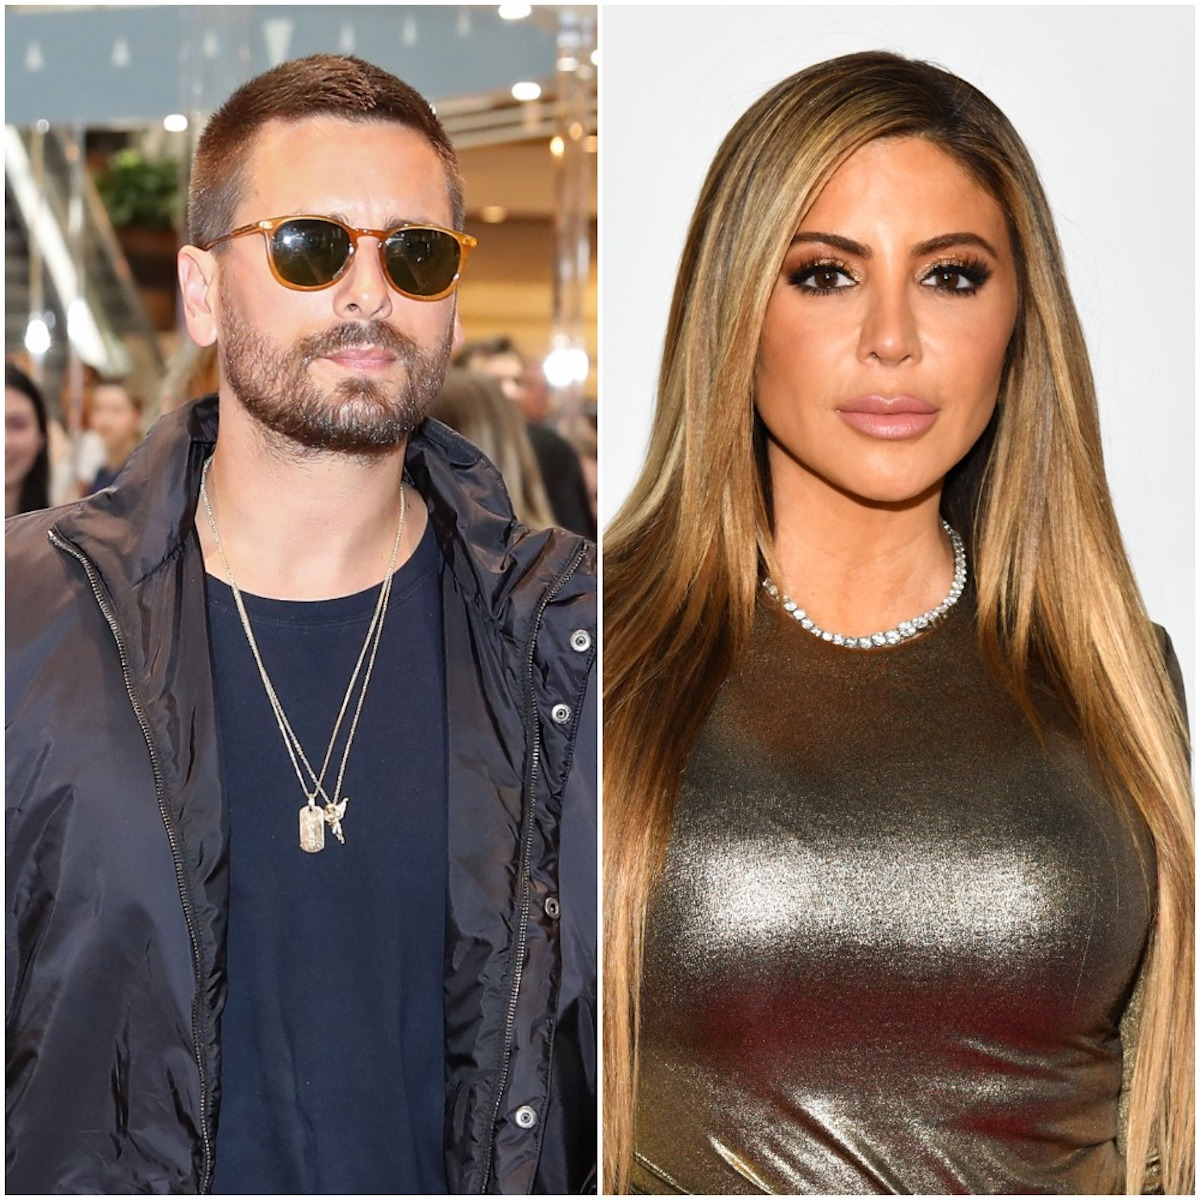 scott-disick-and-larsa-pippen-heres-why-they-hung-out-despite-her-drama-with-the-kardashians